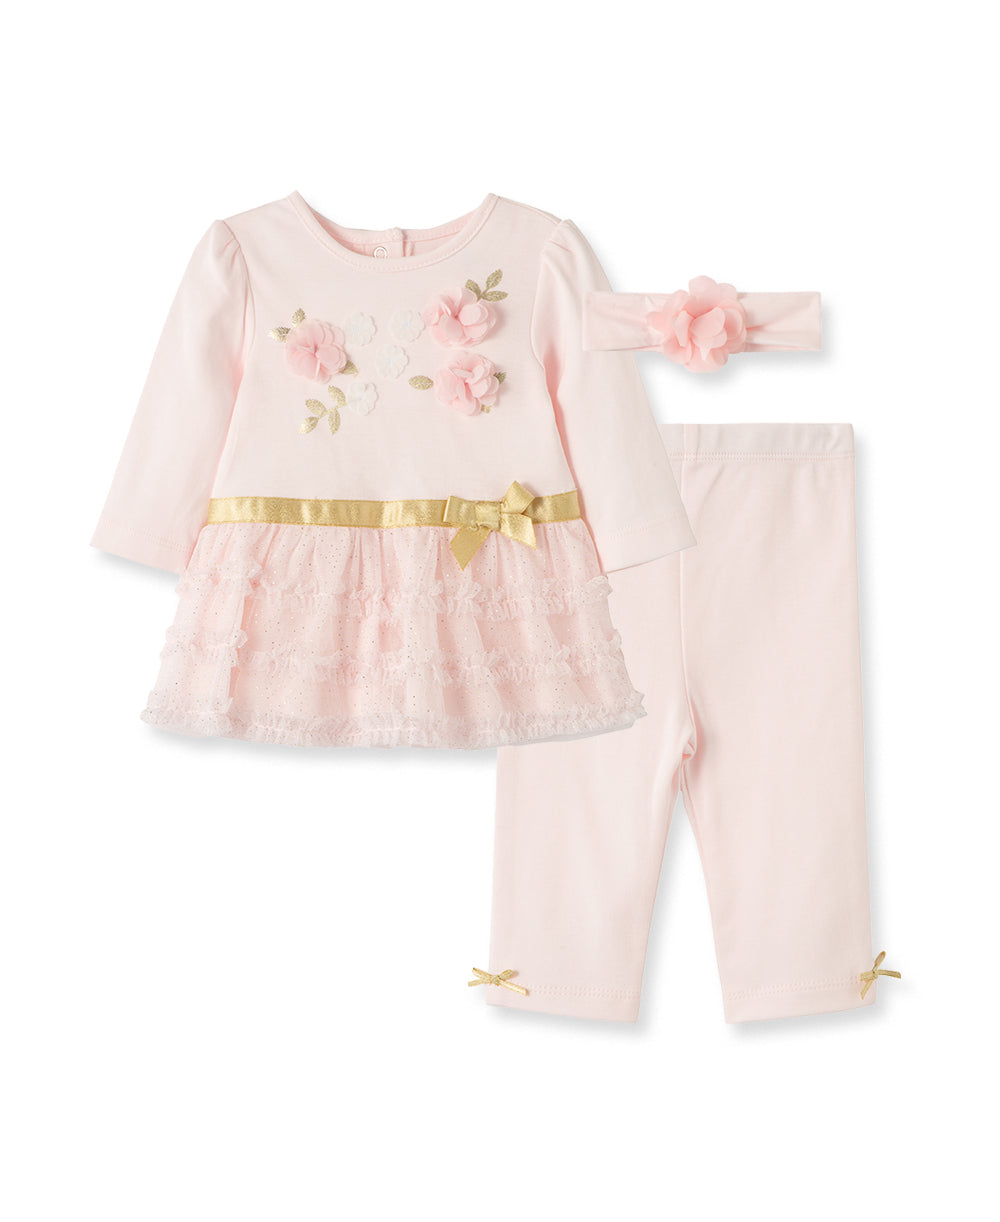 Rosette Tutu Legging Set